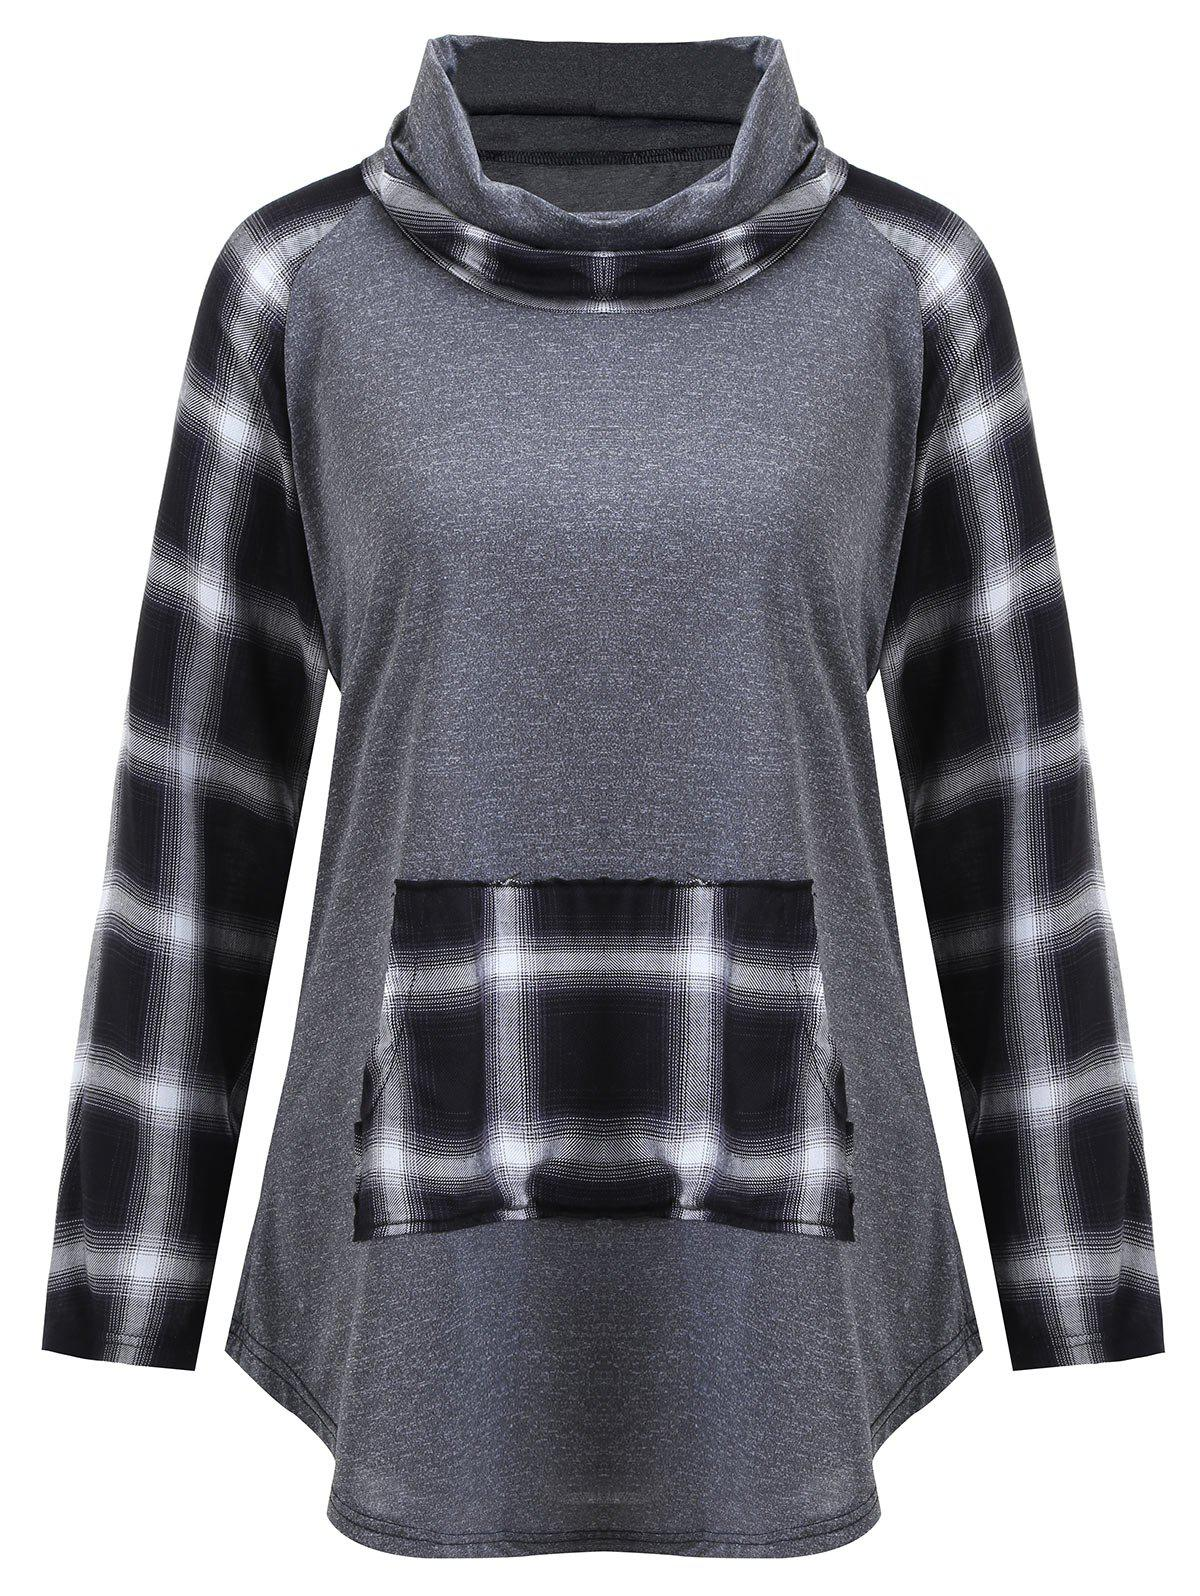 Plus Size Turtleneck Plaid Panel TeeWOMEN<br><br>Size: 5XL; Color: GRAY; Material: Cotton,Polyester; Shirt Length: Regular; Sleeve Length: Full; Collar: Turtleneck; Style: Fashion; Season: Fall; Sleeve Type: Raglan Sleeve; Embellishment: Front Pocket,Panel; Pattern Type: Plaid; Weight: 0.2700kg; Package Contents: 1 x T-shirt;